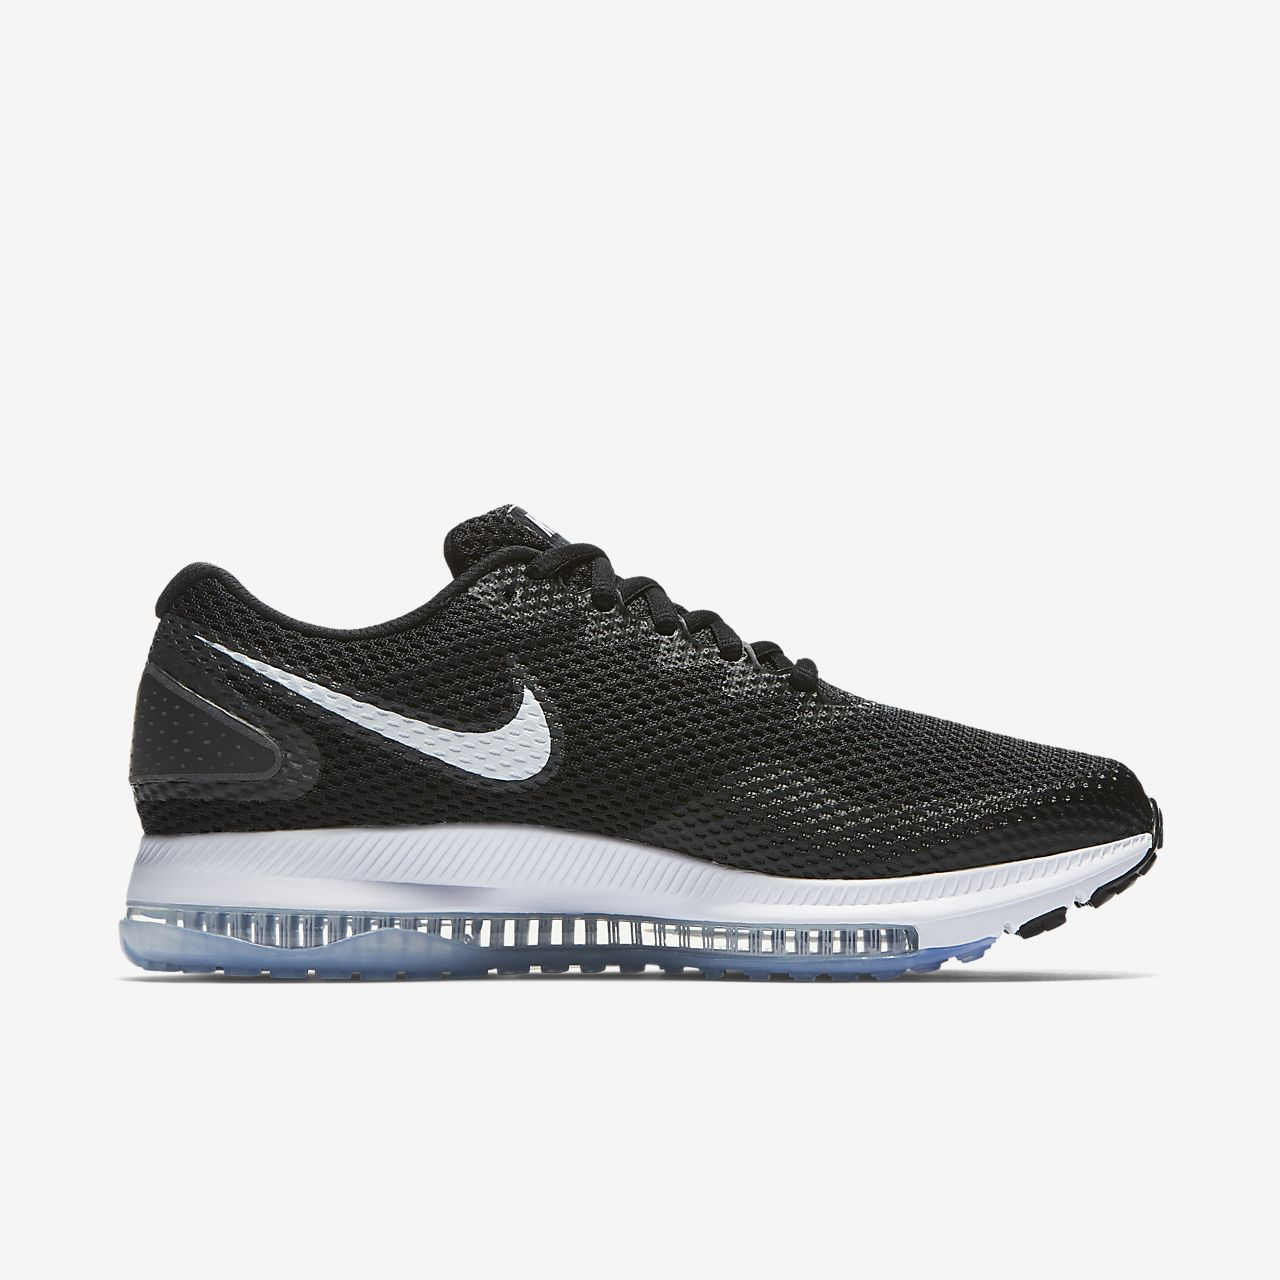 Femme Chaussure Zoom De Running All Out 2 Low Nike Pour 0wPOn8k